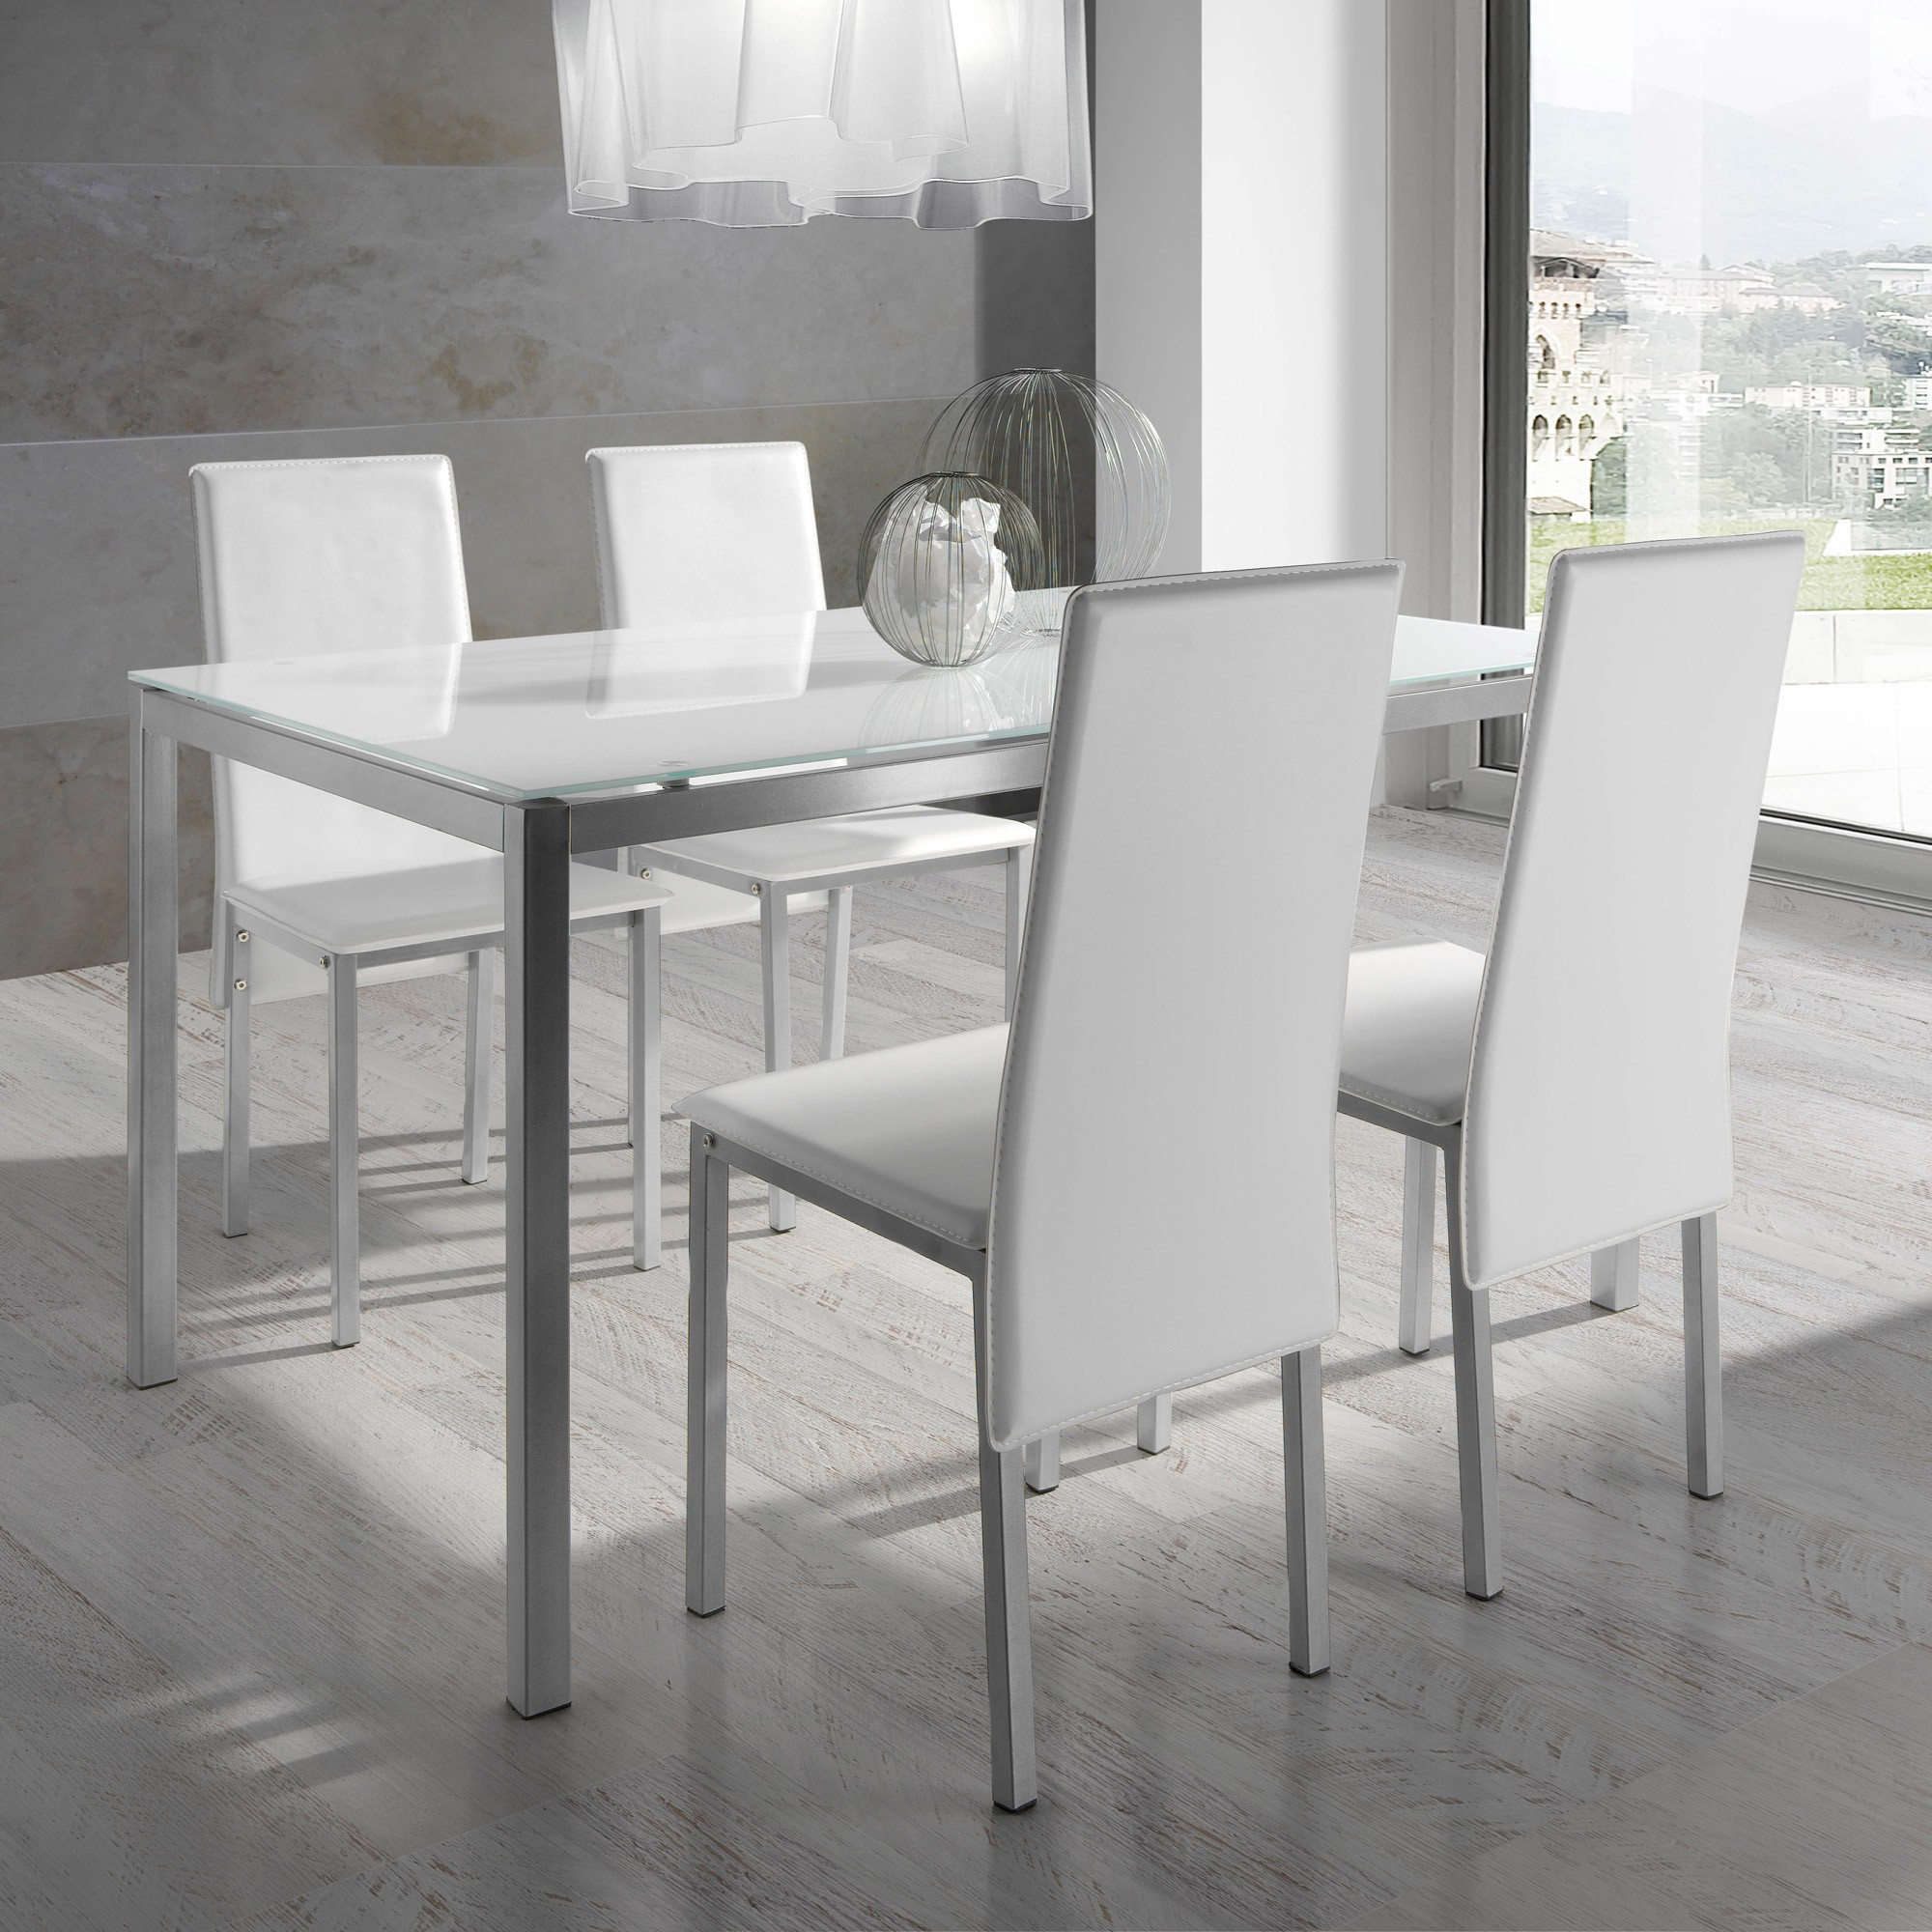 Ensemble table et chaise salle a manger but chaise for Chaise salle manger design